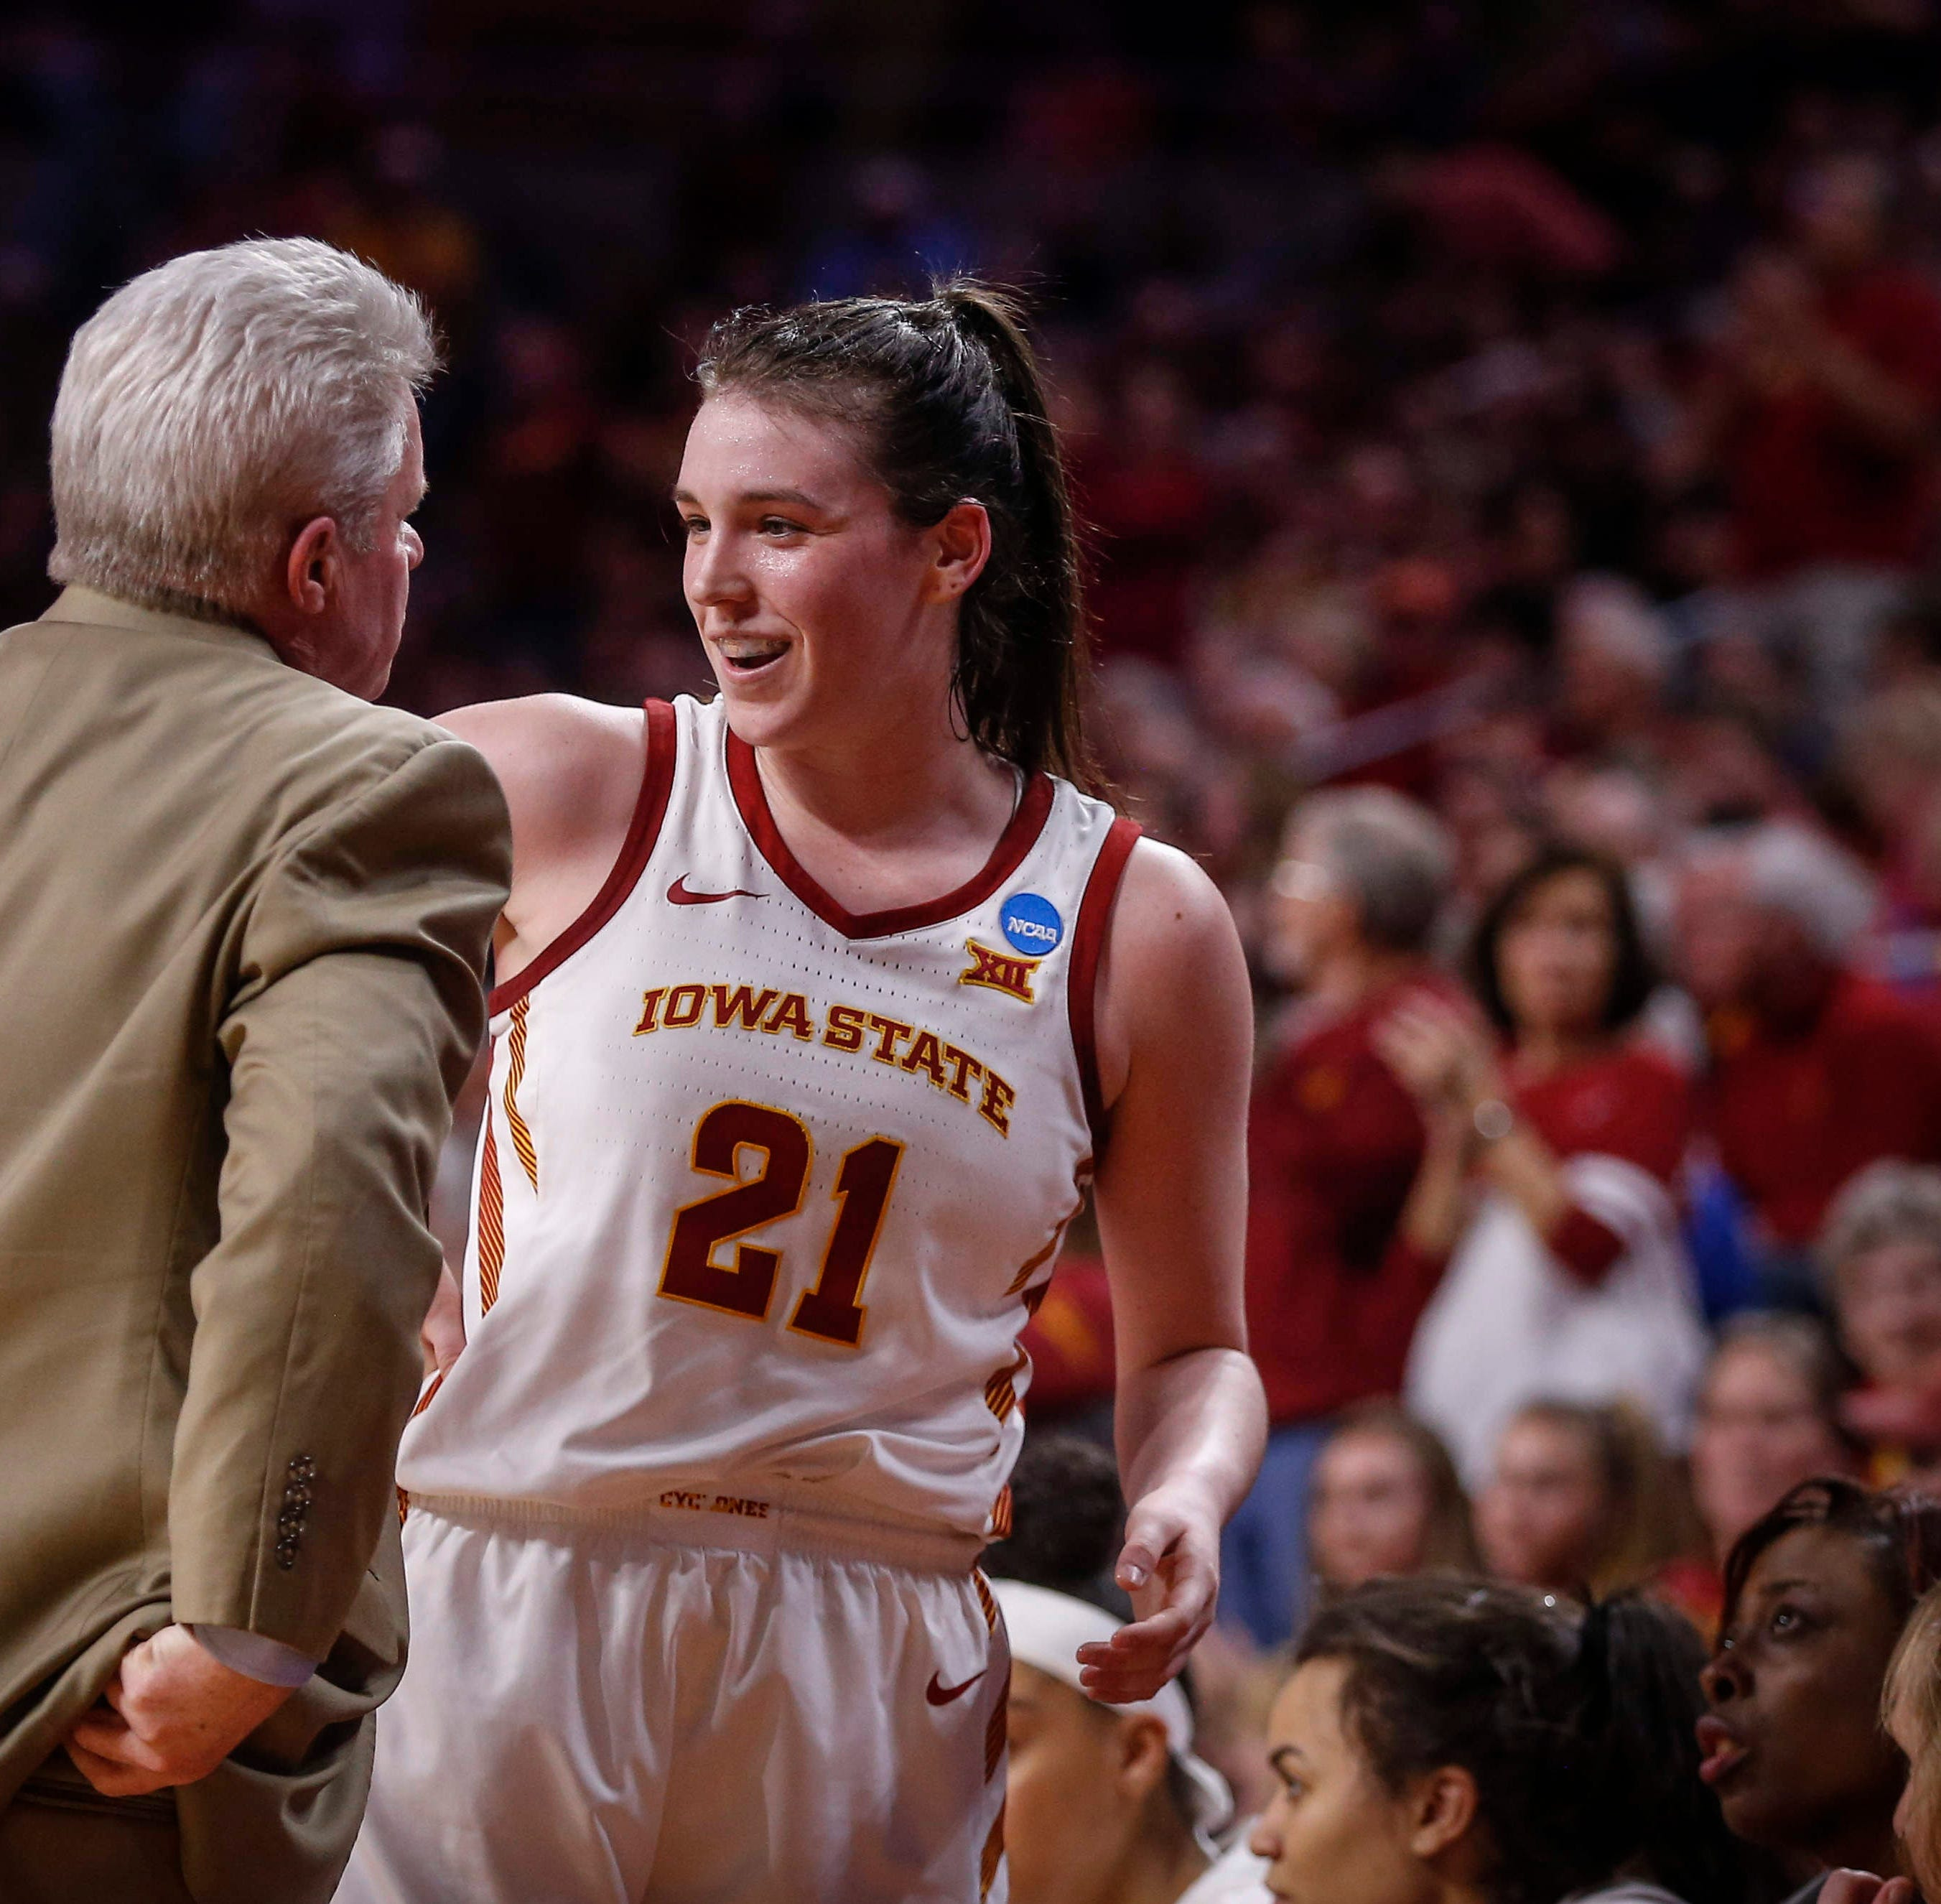 Iowa State's Bridget Carleton named second-team All-American